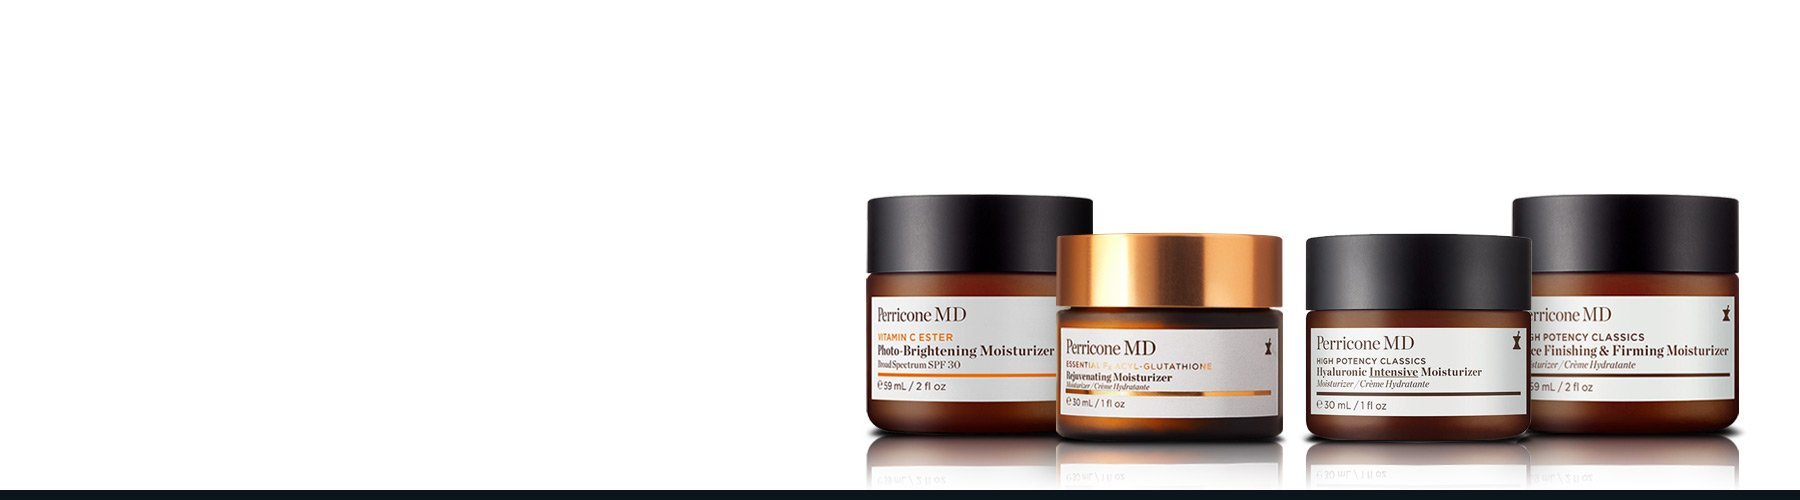 Moisturizers Perricone MD